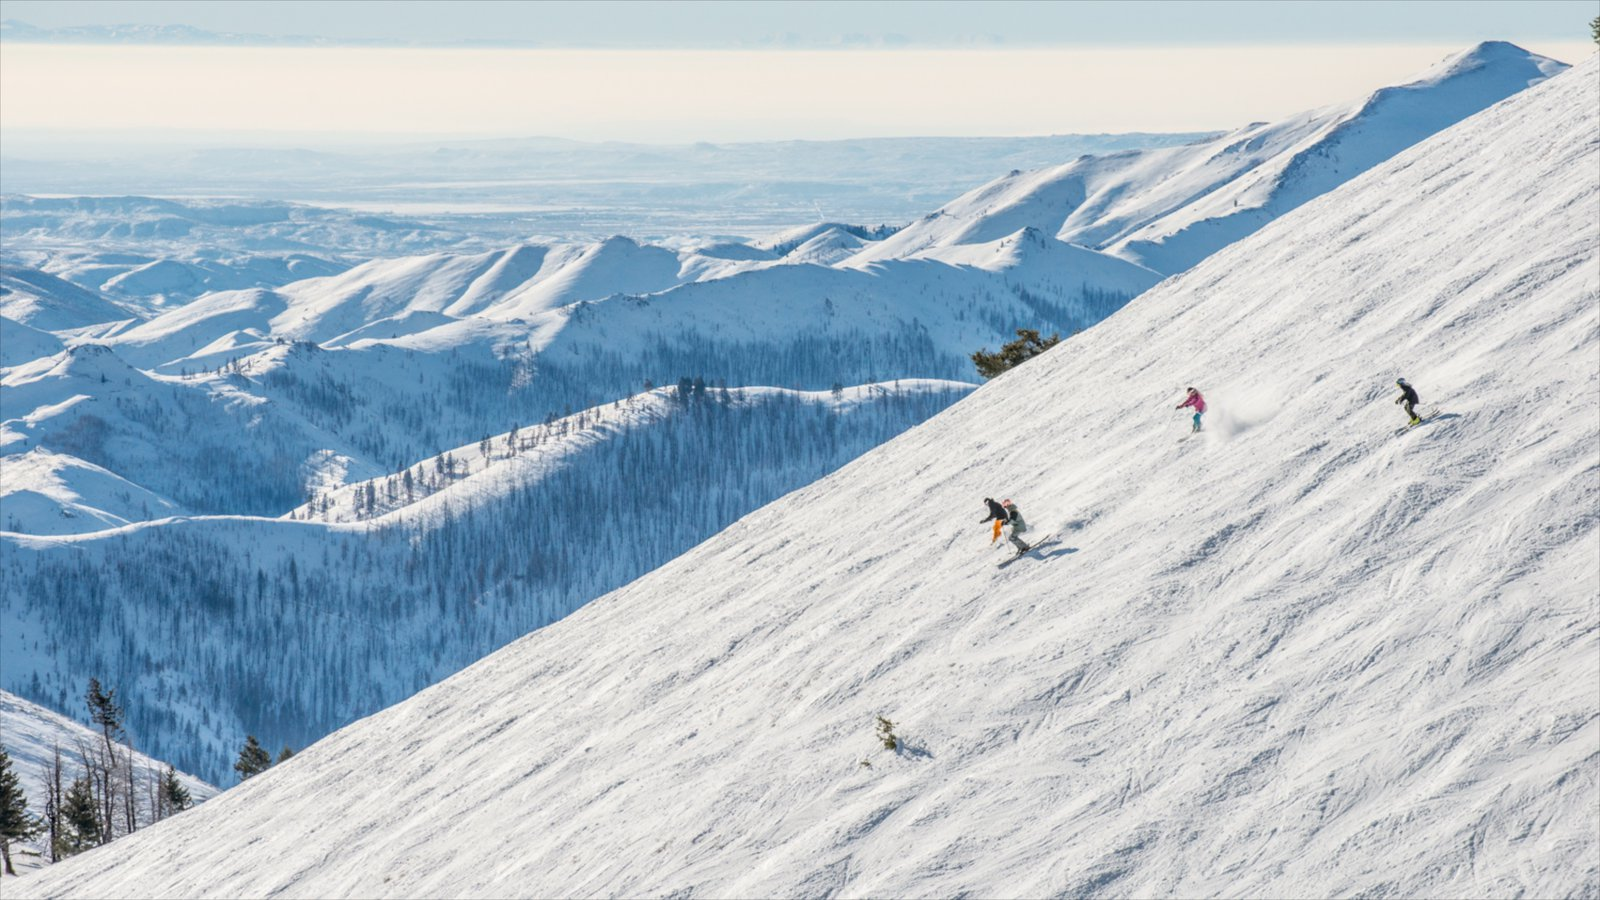 sun valley ski resort pictures: view photos & images of sun valley